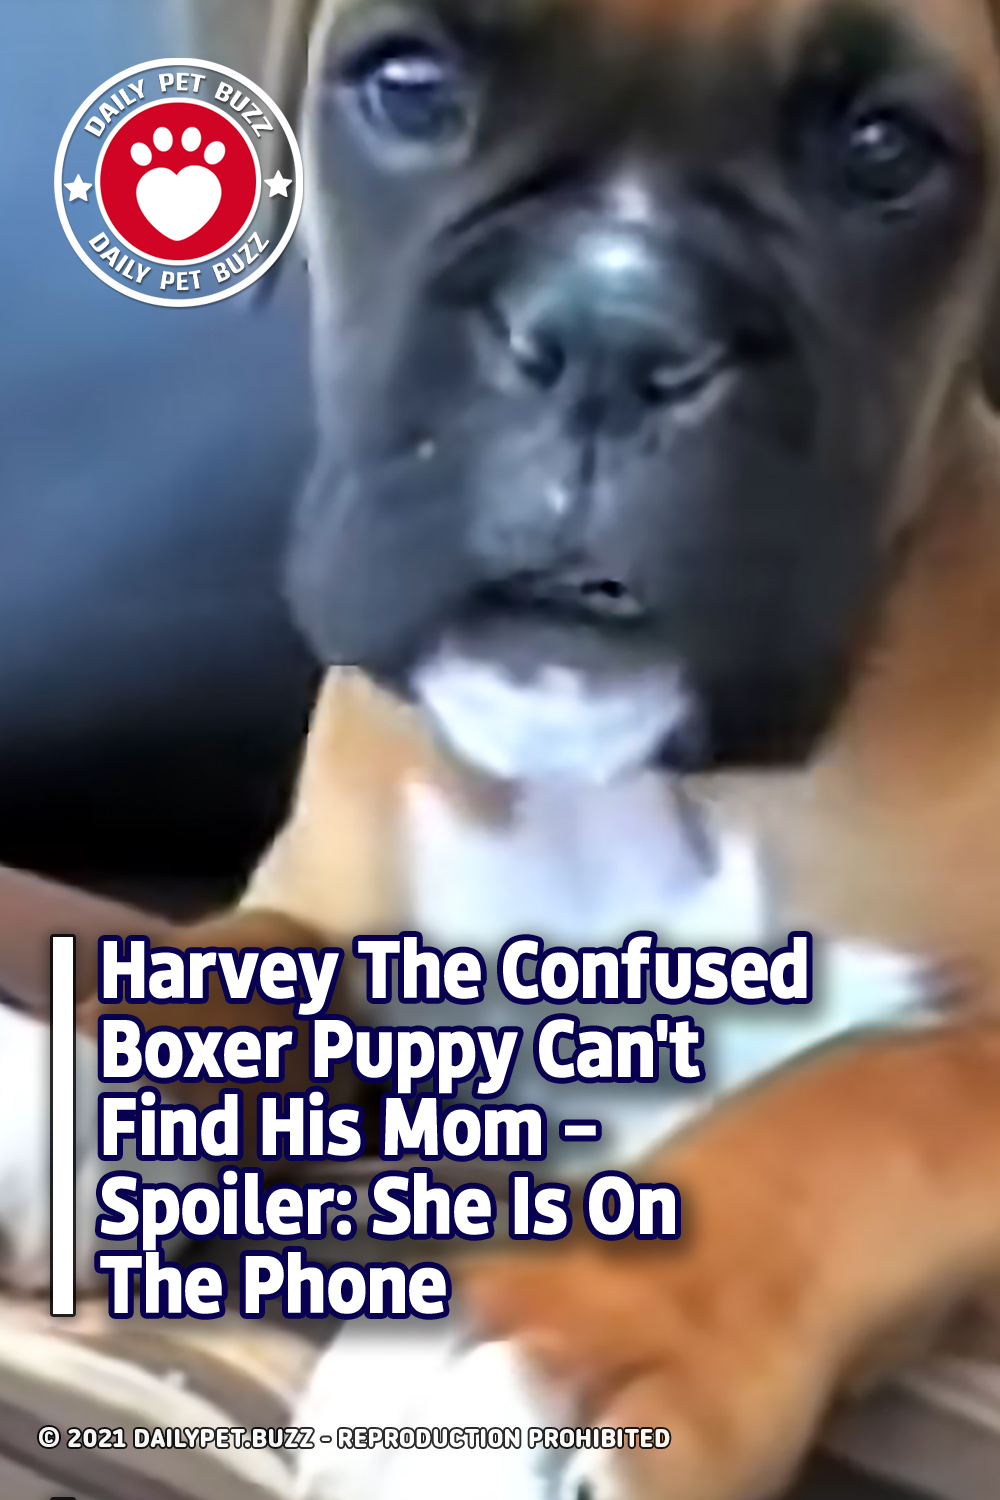 Harvey The Confused Boxer Puppy Can\'t Find His Mom – Spoiler: She Is On The Phone